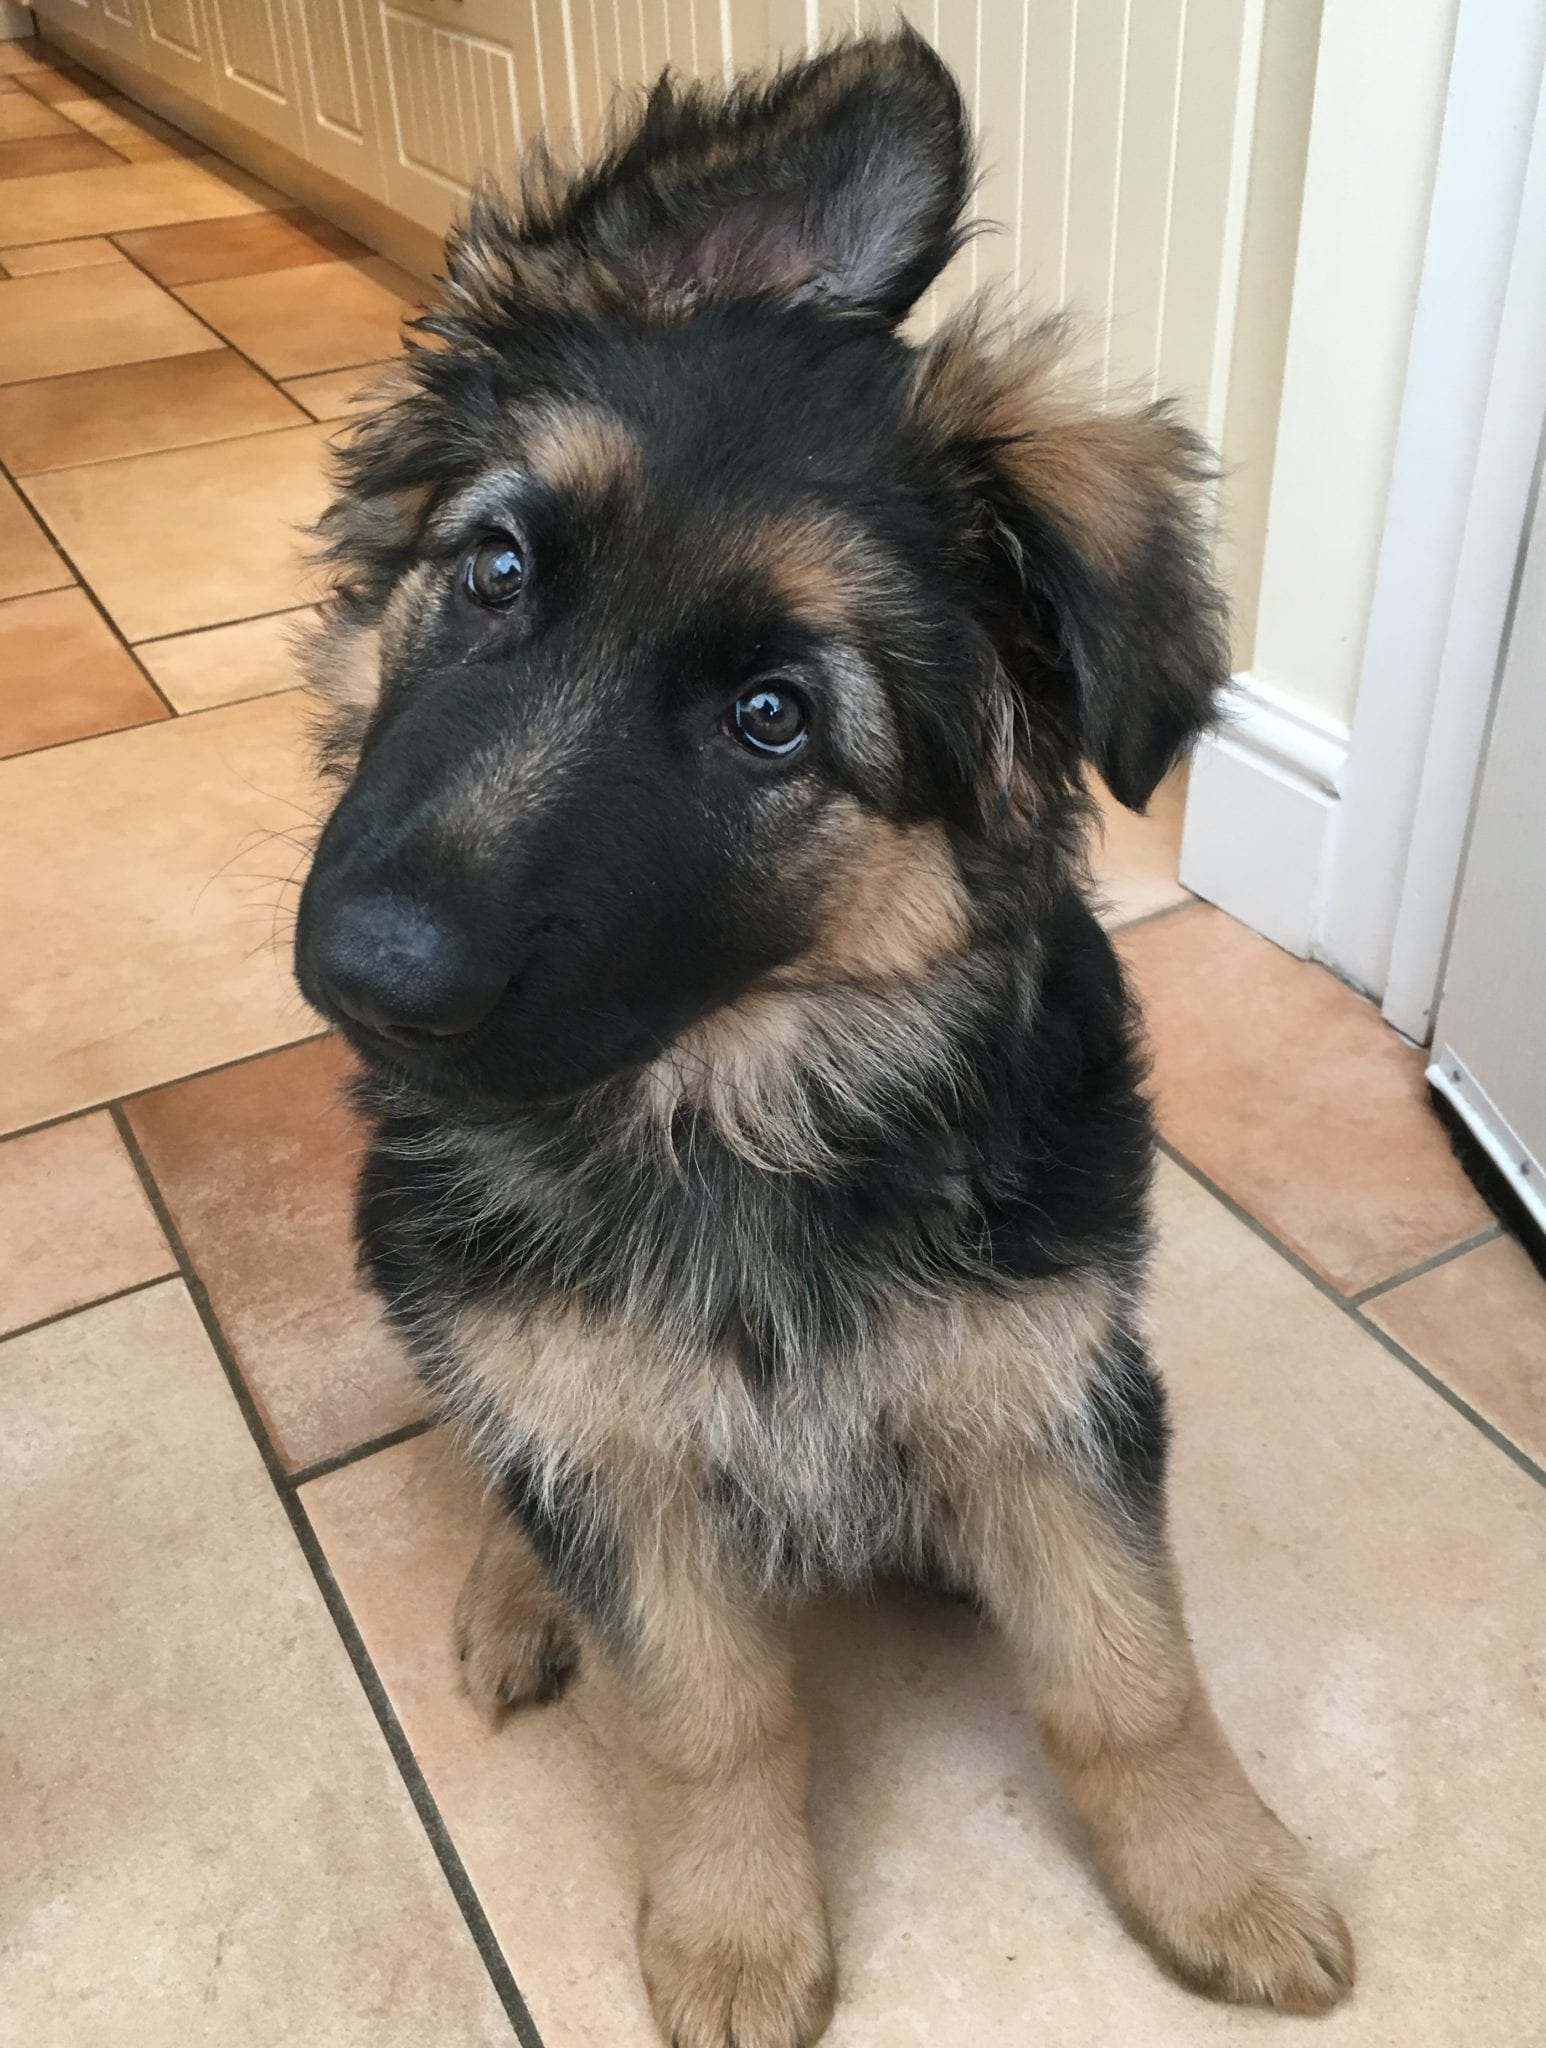 10 week old German Shepherd Puppy 'Freyja'